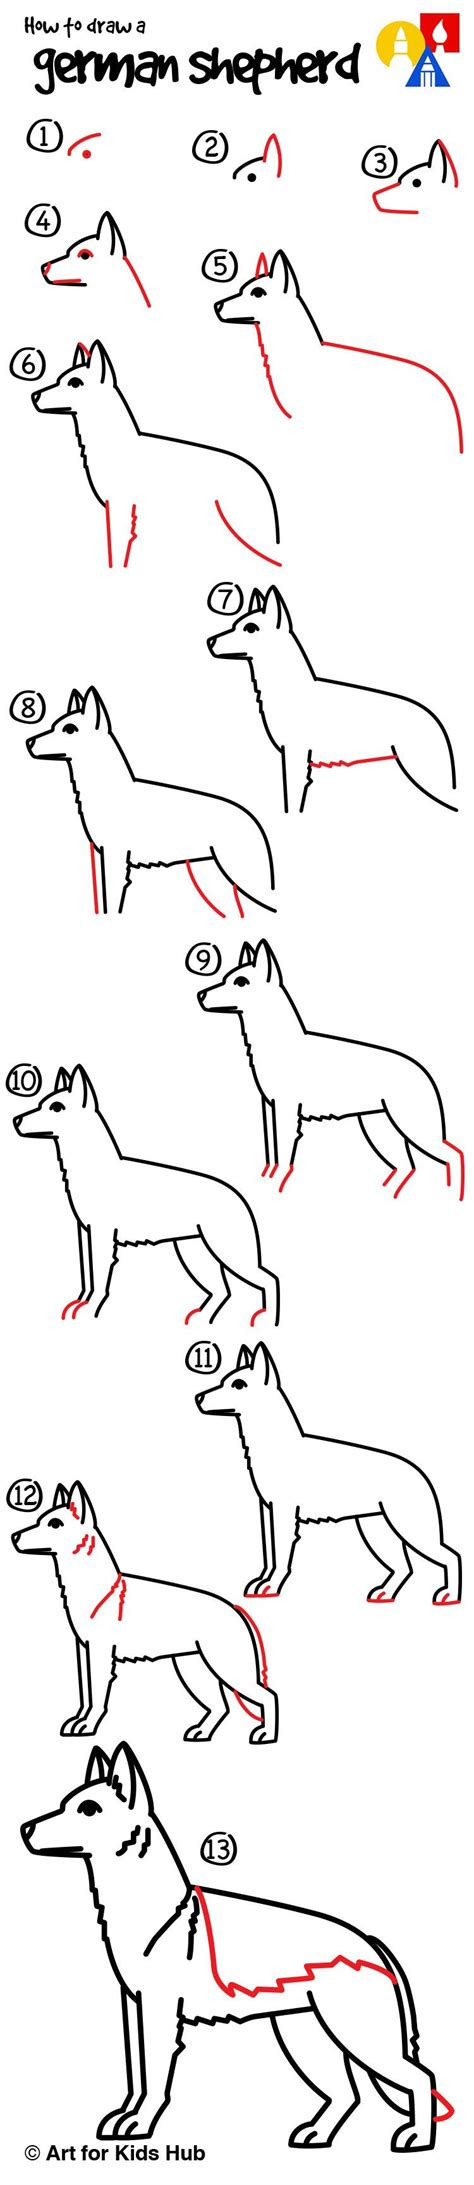 how to a german shepherd how to draw a german shepherd for hub german shepherds learning and